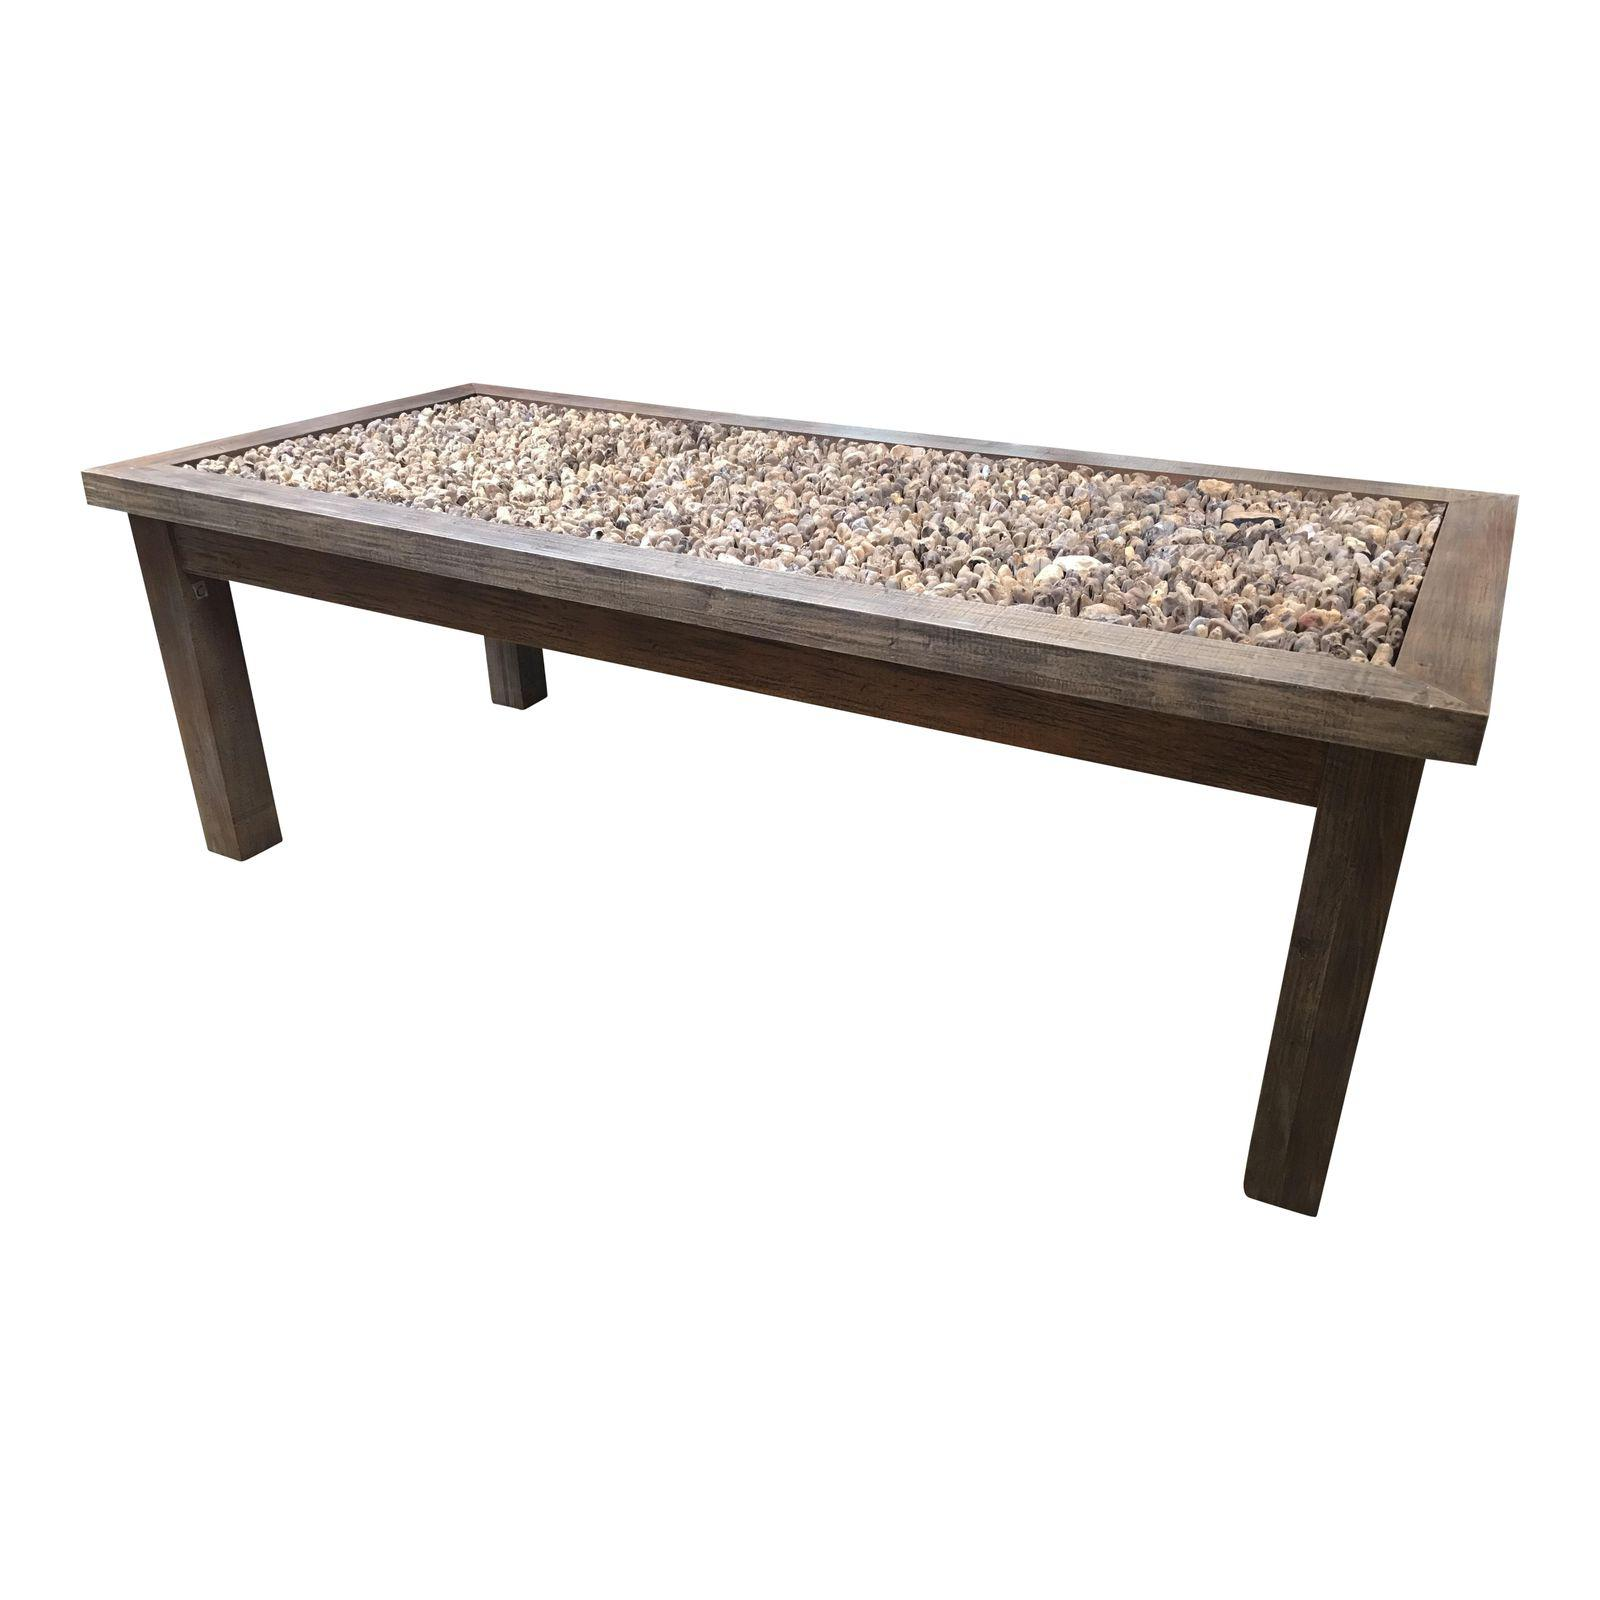 The atlanta driftwood dining table original price 4 299 for Original dining tables